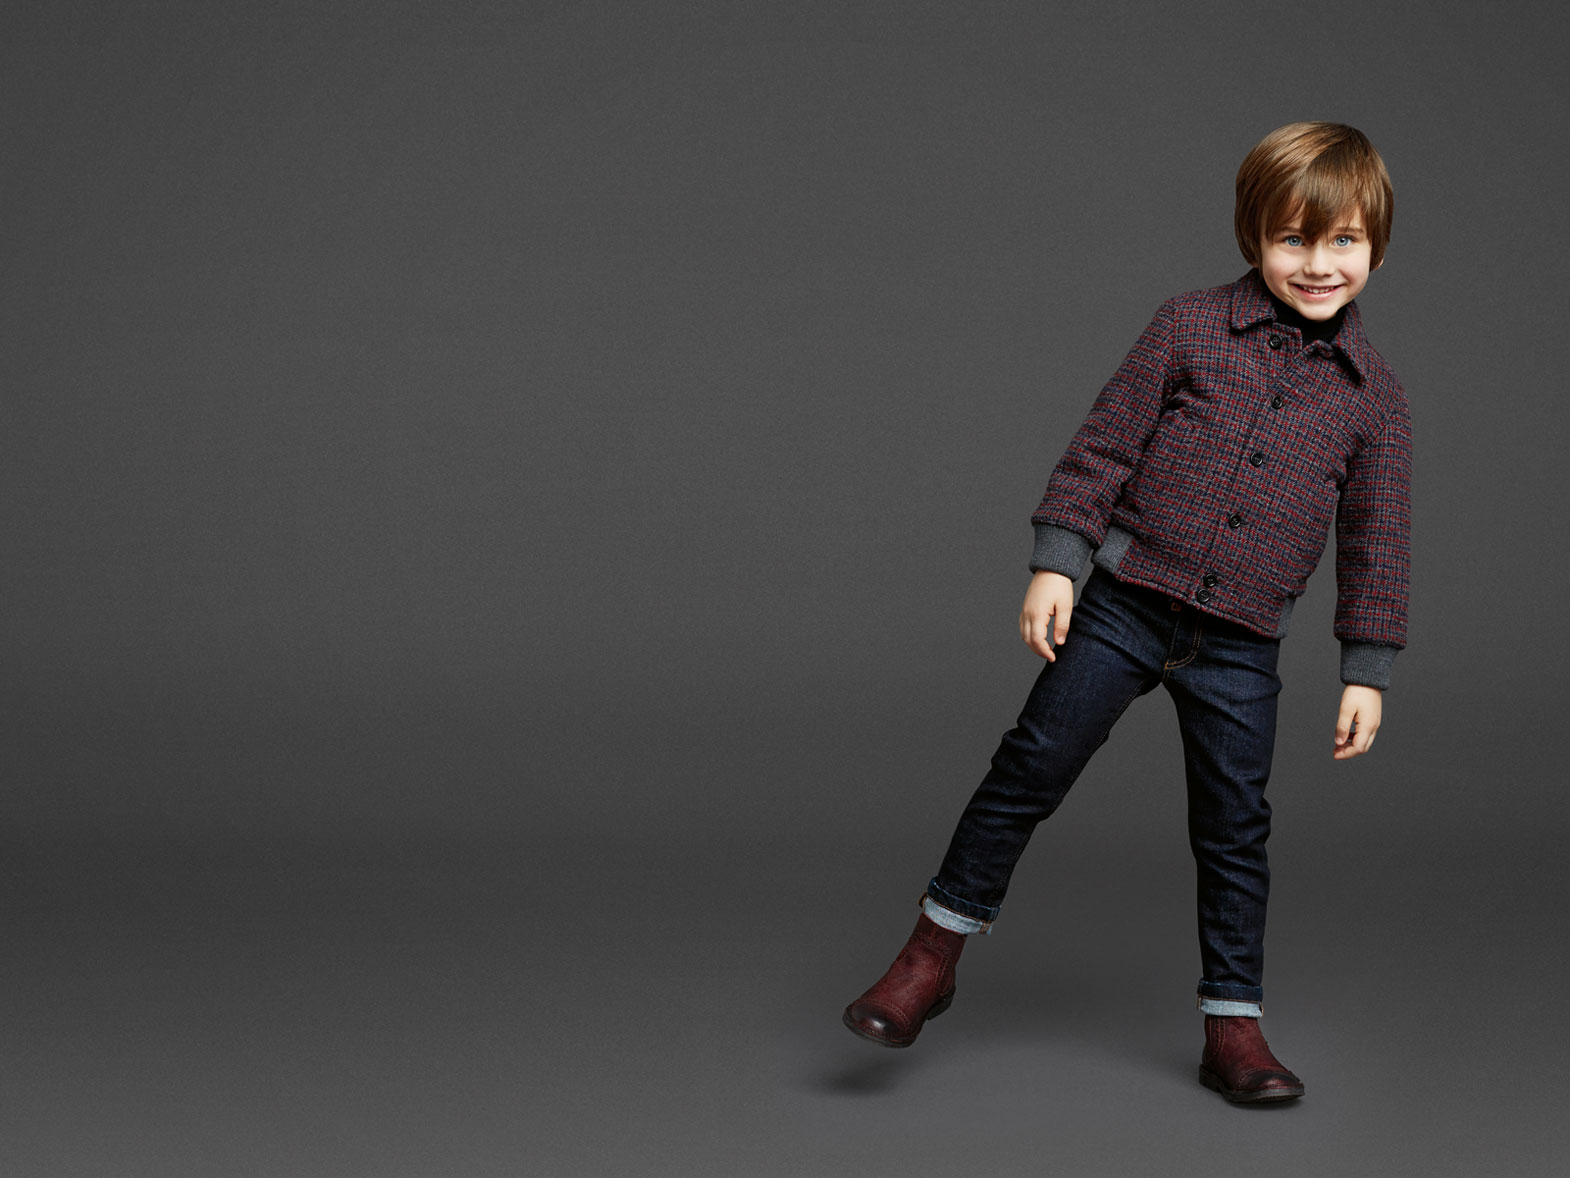 dolce And gabbana Fw 2014 kids collection 54